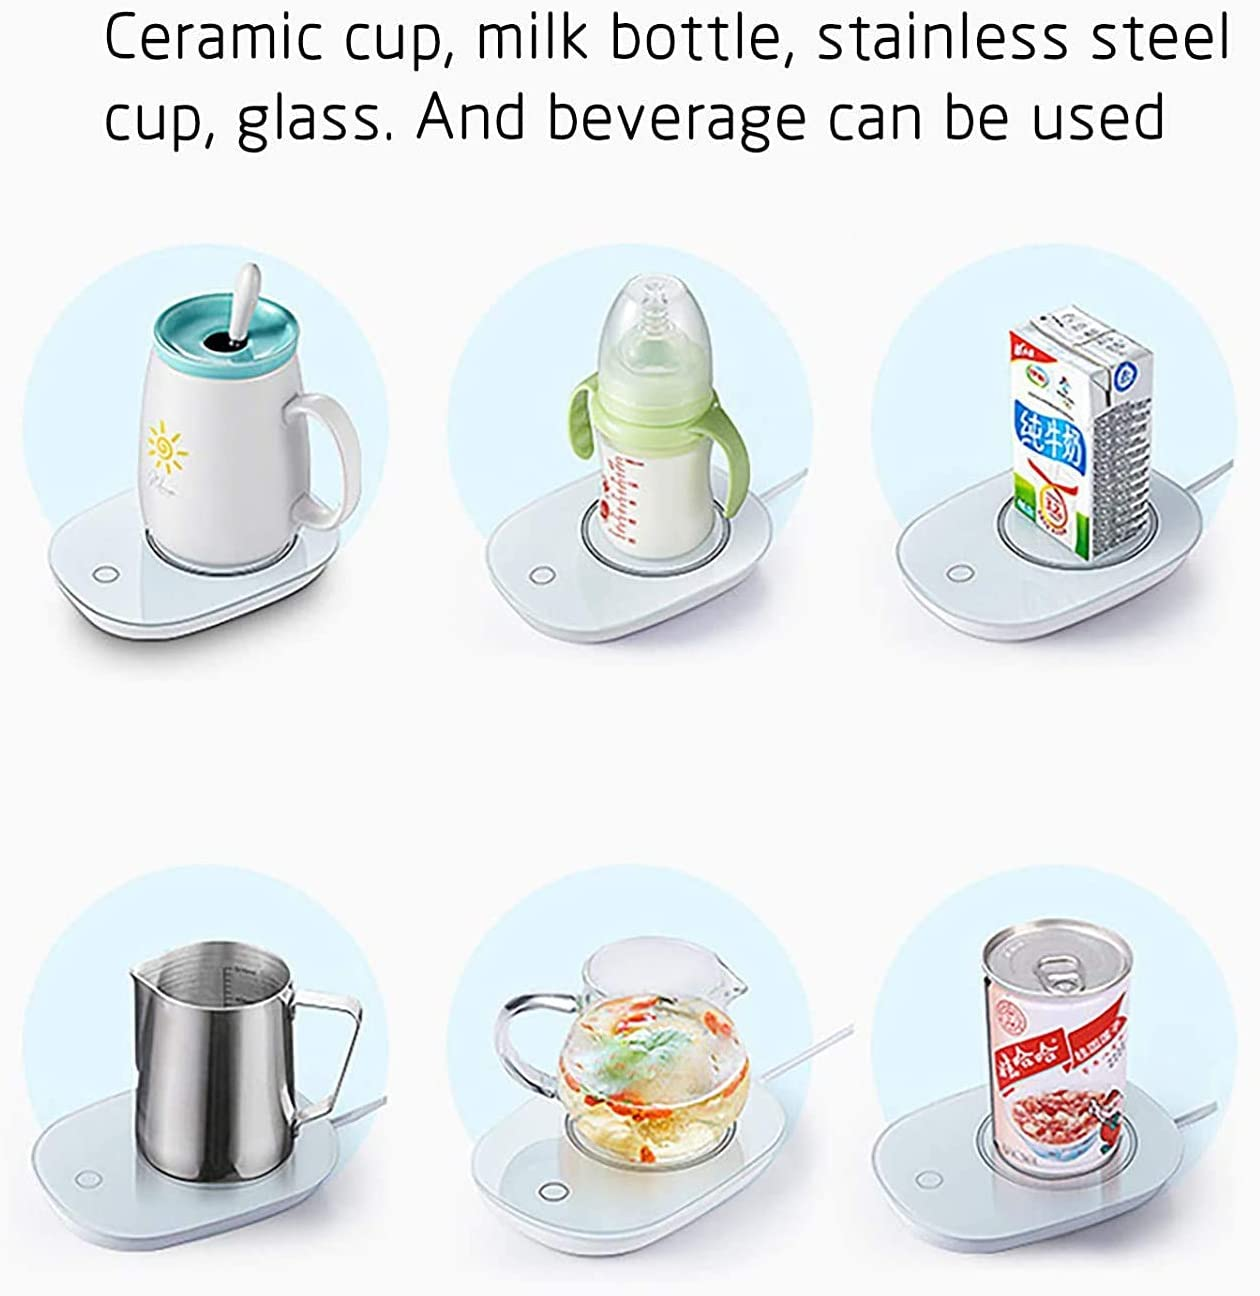 Coffee Cup Warmer with Auto Shut Off Safely Use for Office//Home to Warm Coffee Tea Milk Candle Beverage Warmers Cup Heater for Desk Coffee Mug Warmer